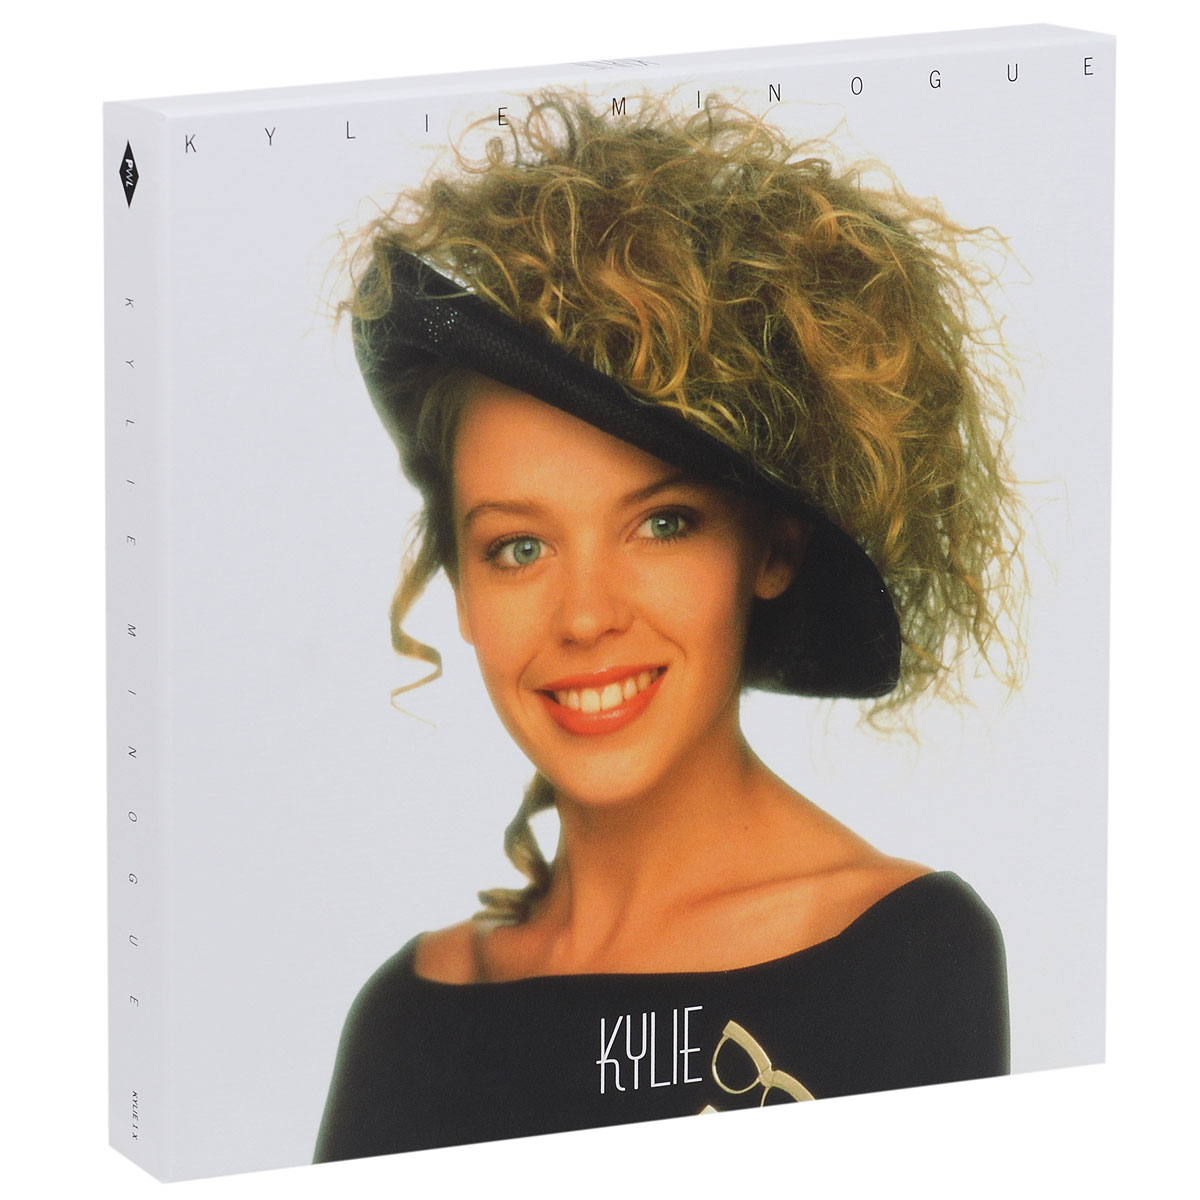 Кайли Миноуг Kylie Minogue.  (2 CD + DVD + LP)